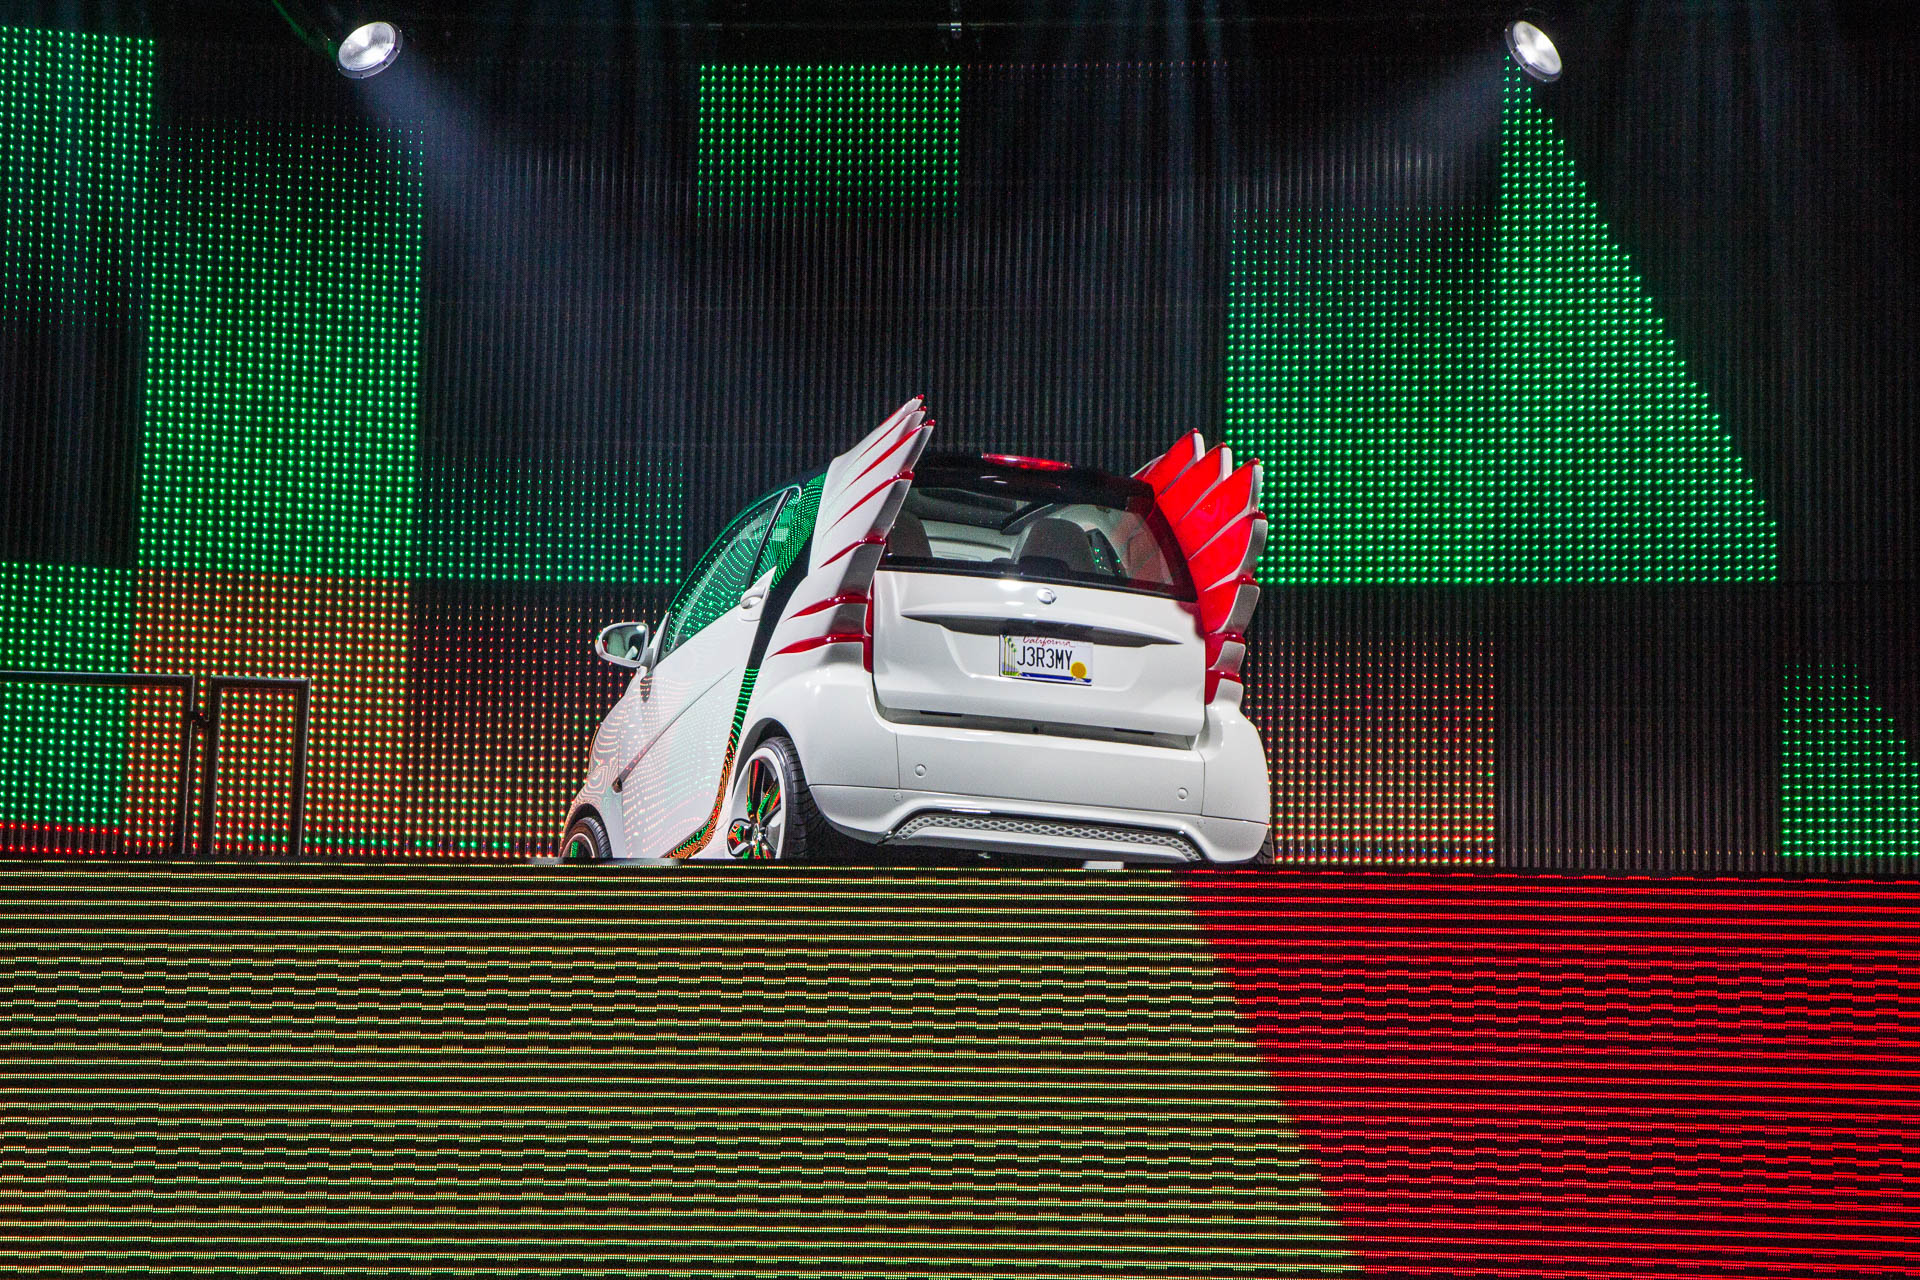 The smart forjeremy showcar (smart fortwo electric drive) by Jeremy Scott